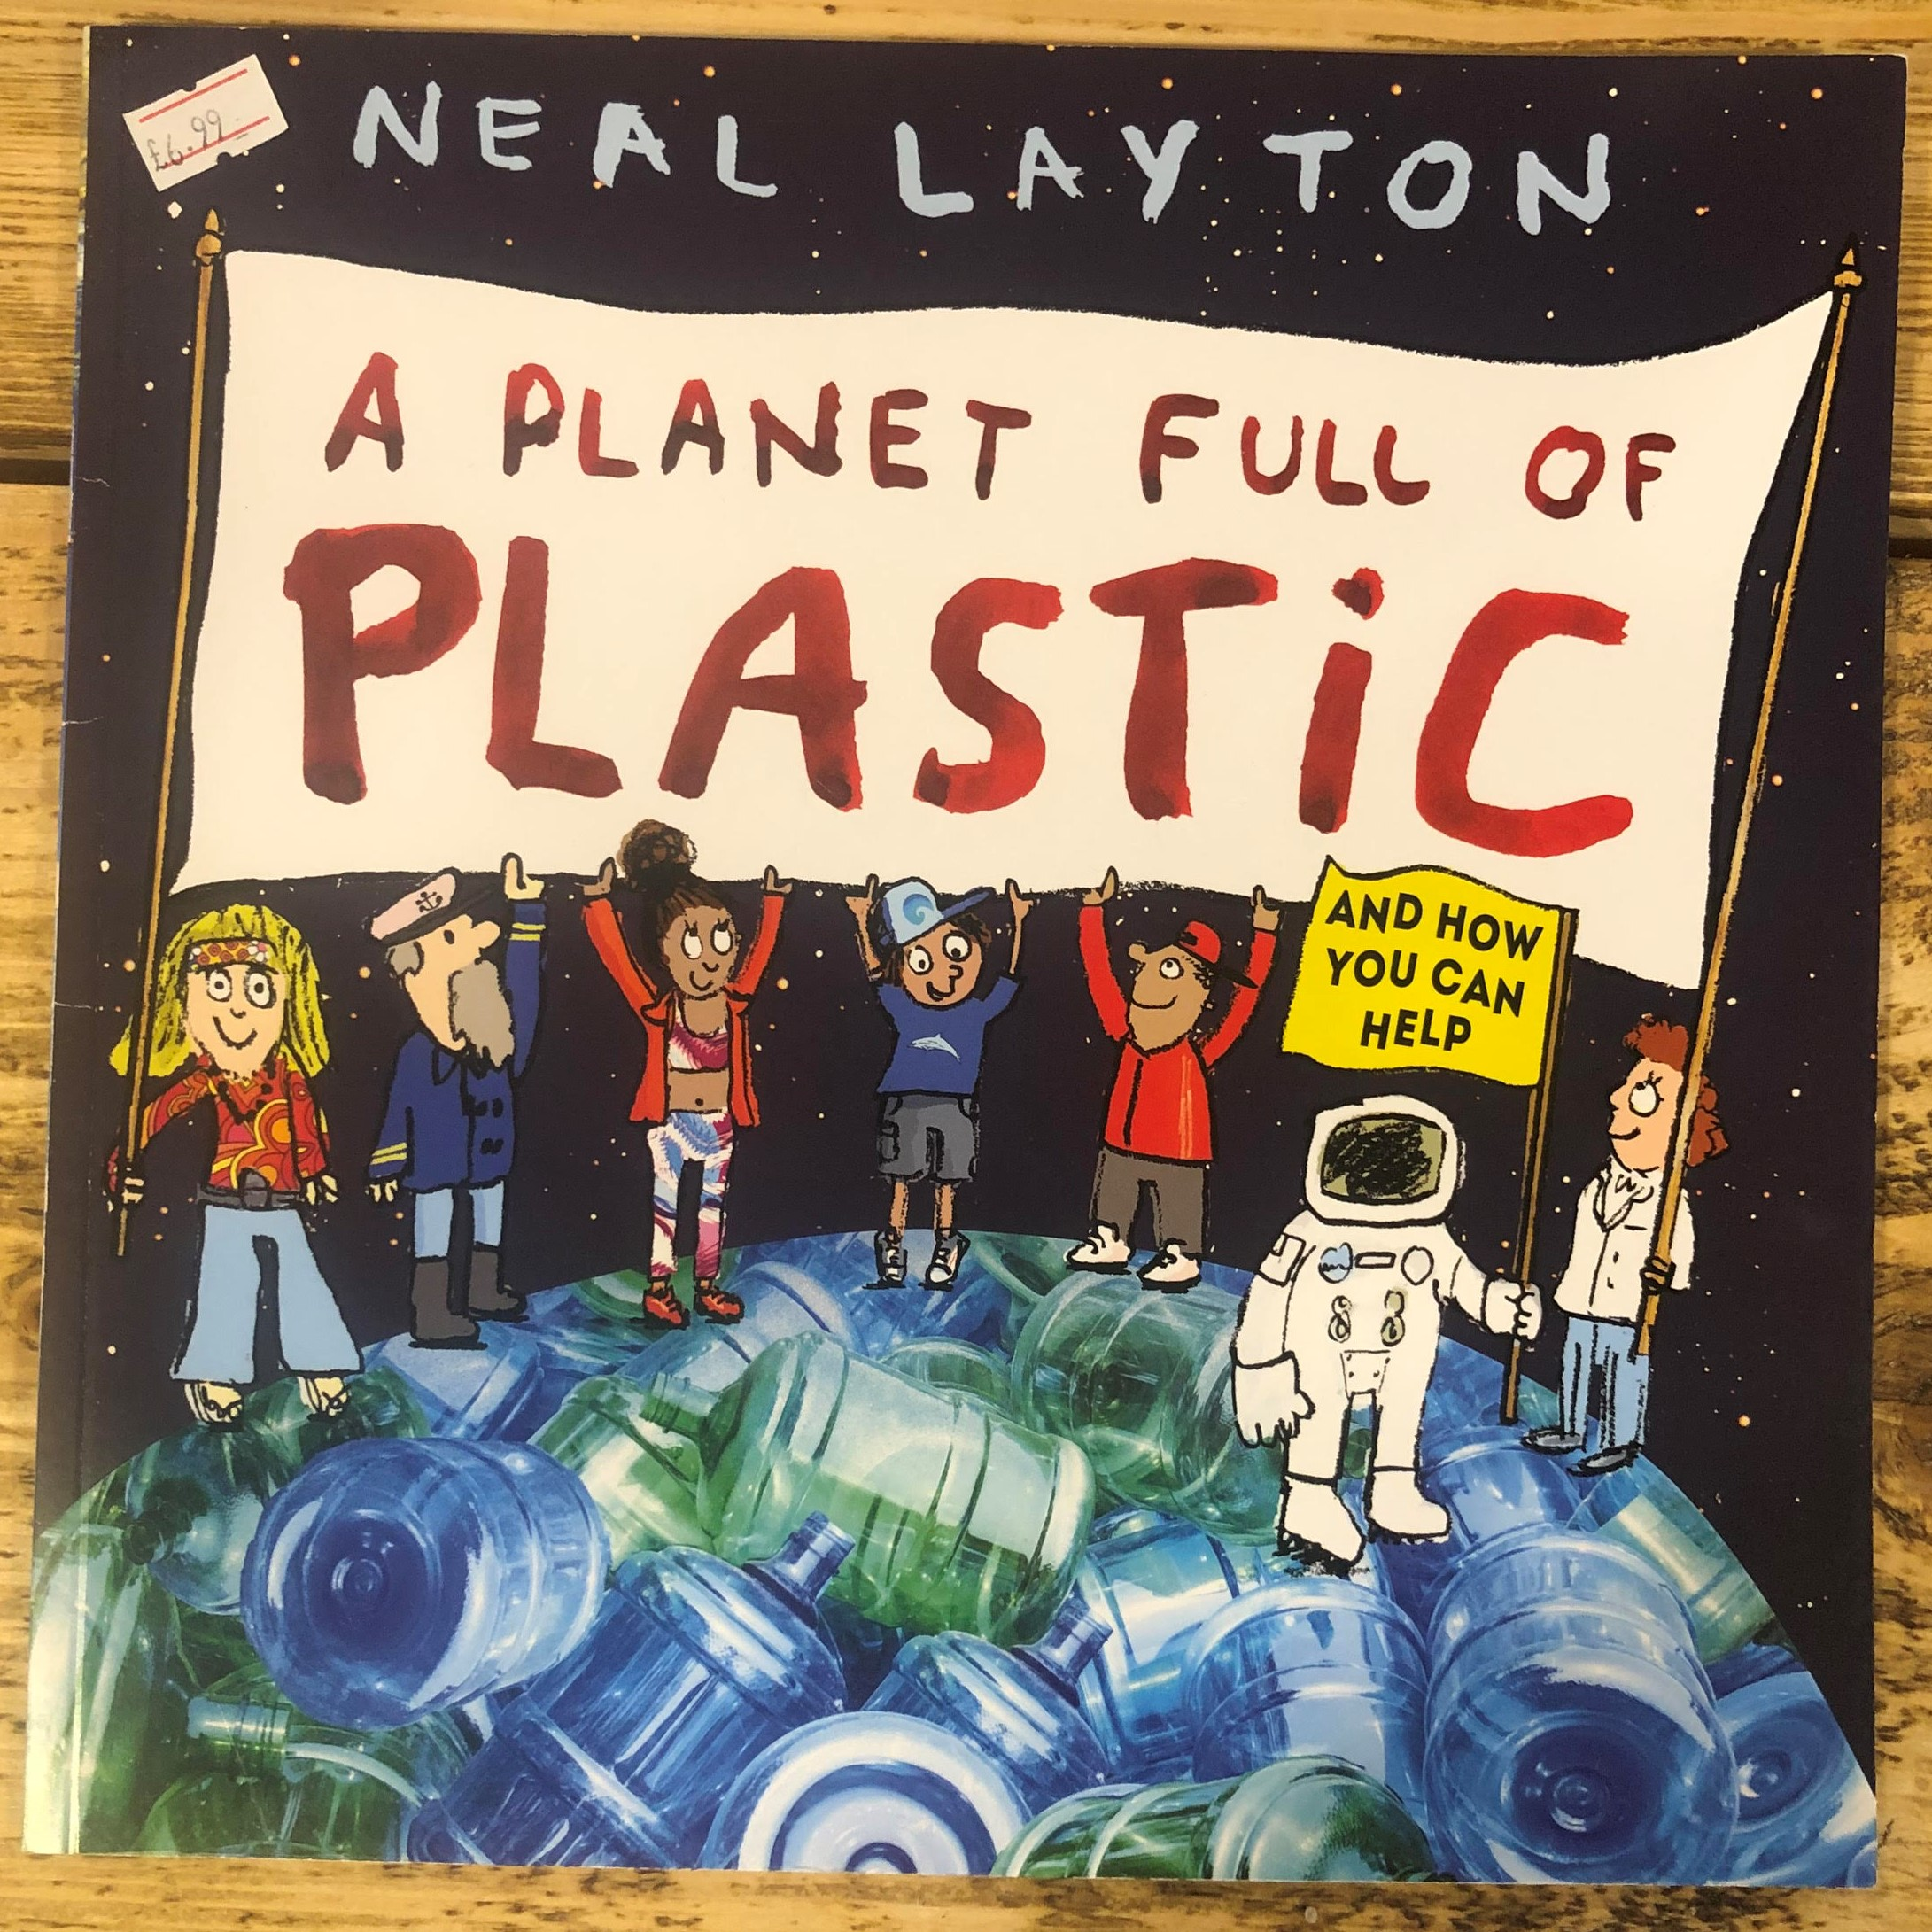 A Planet Full of Plastic (Paperback) by Neal Layton